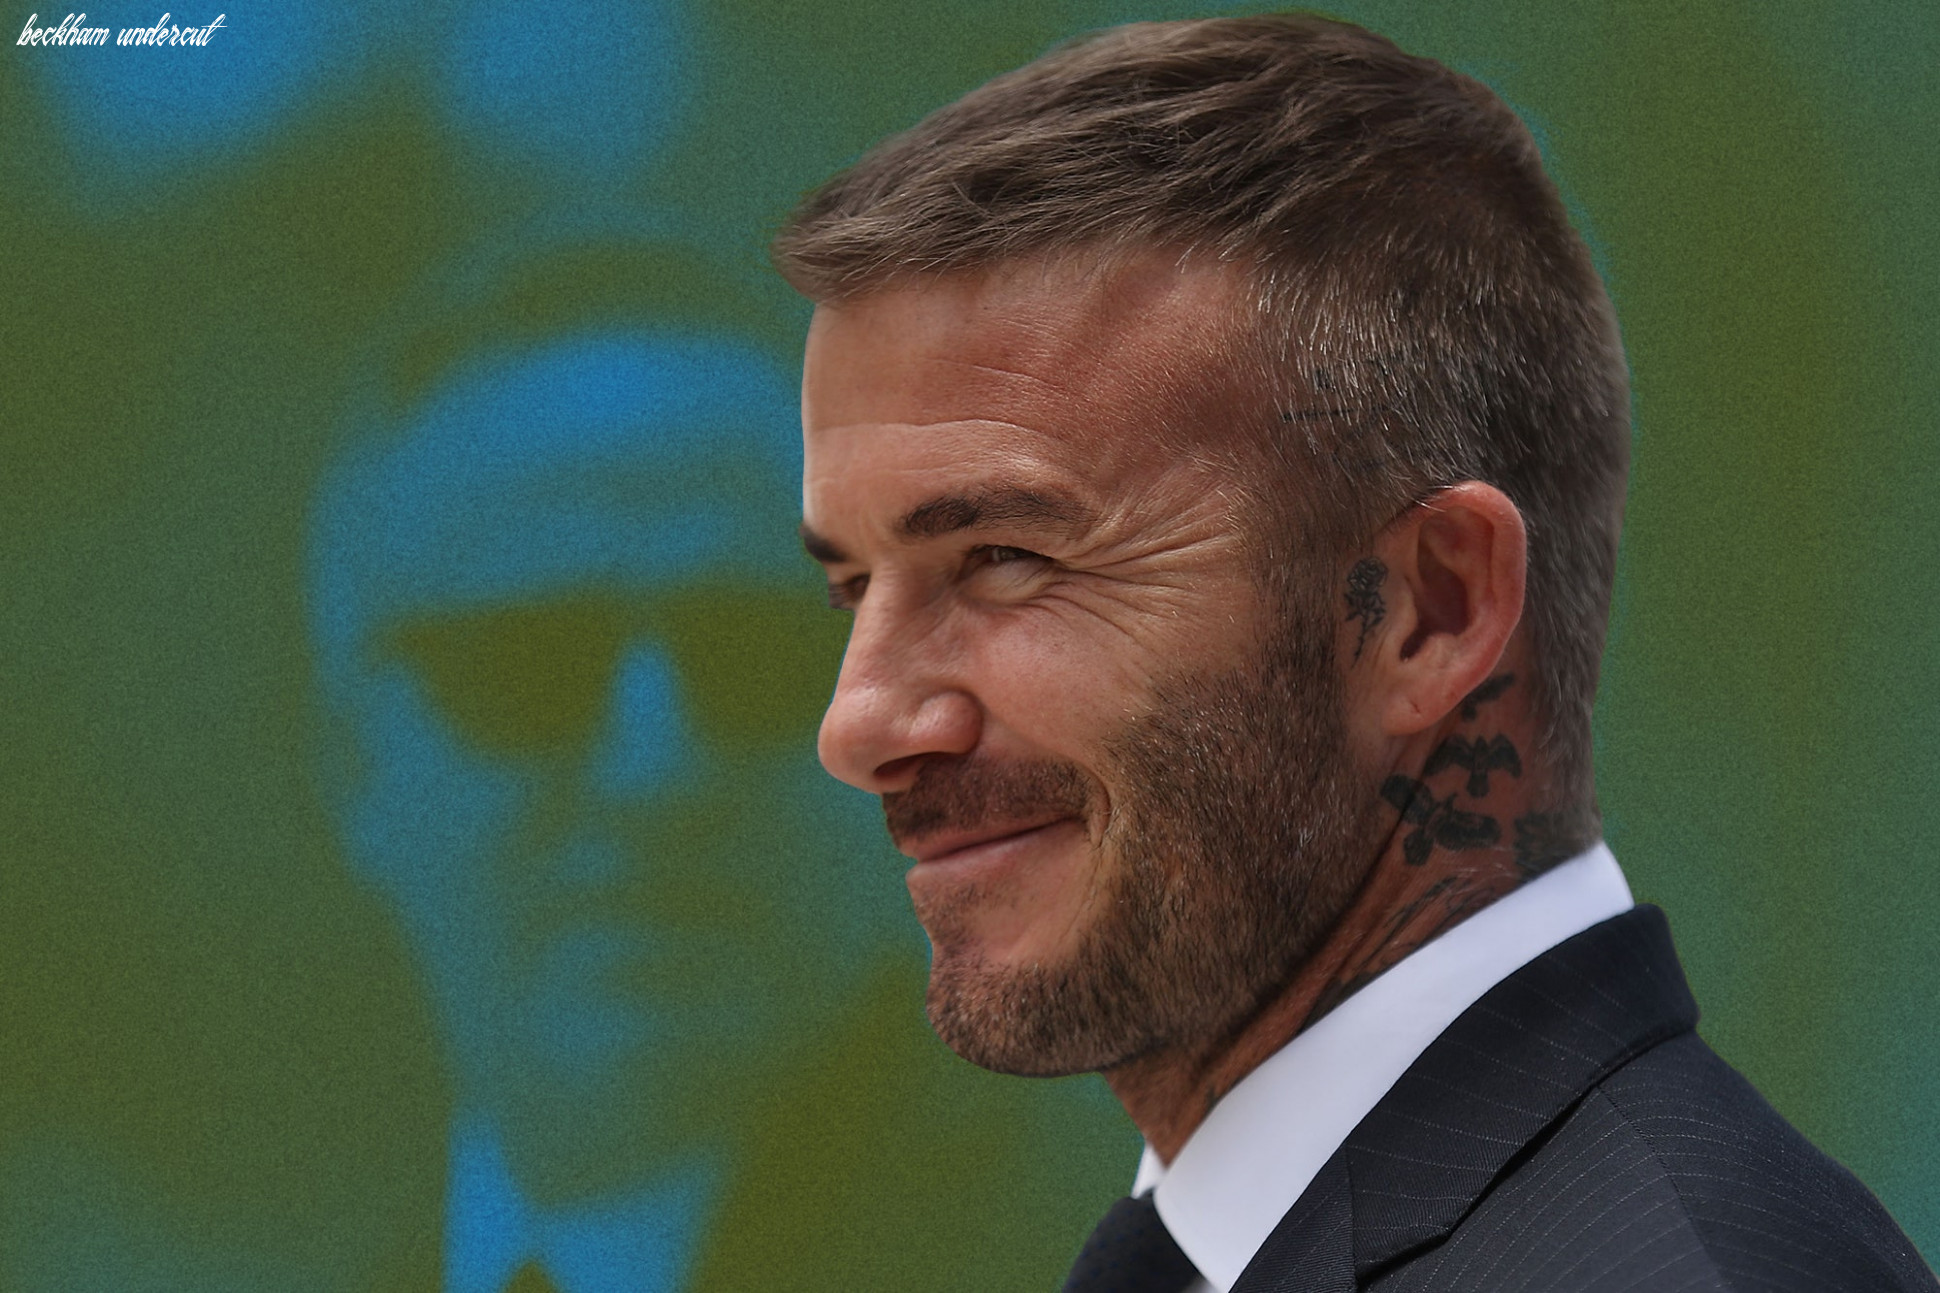 How to get every david beckham haircut | gq beckham undercut